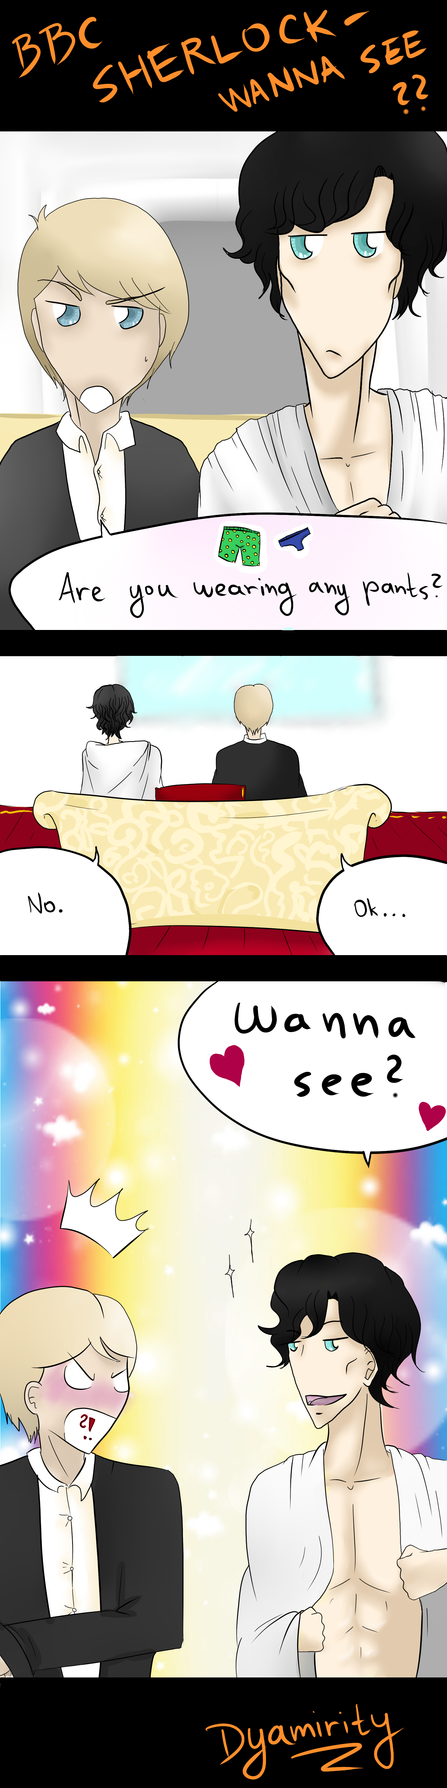 BBC Sherlock - Wanna See? by Dyamirity